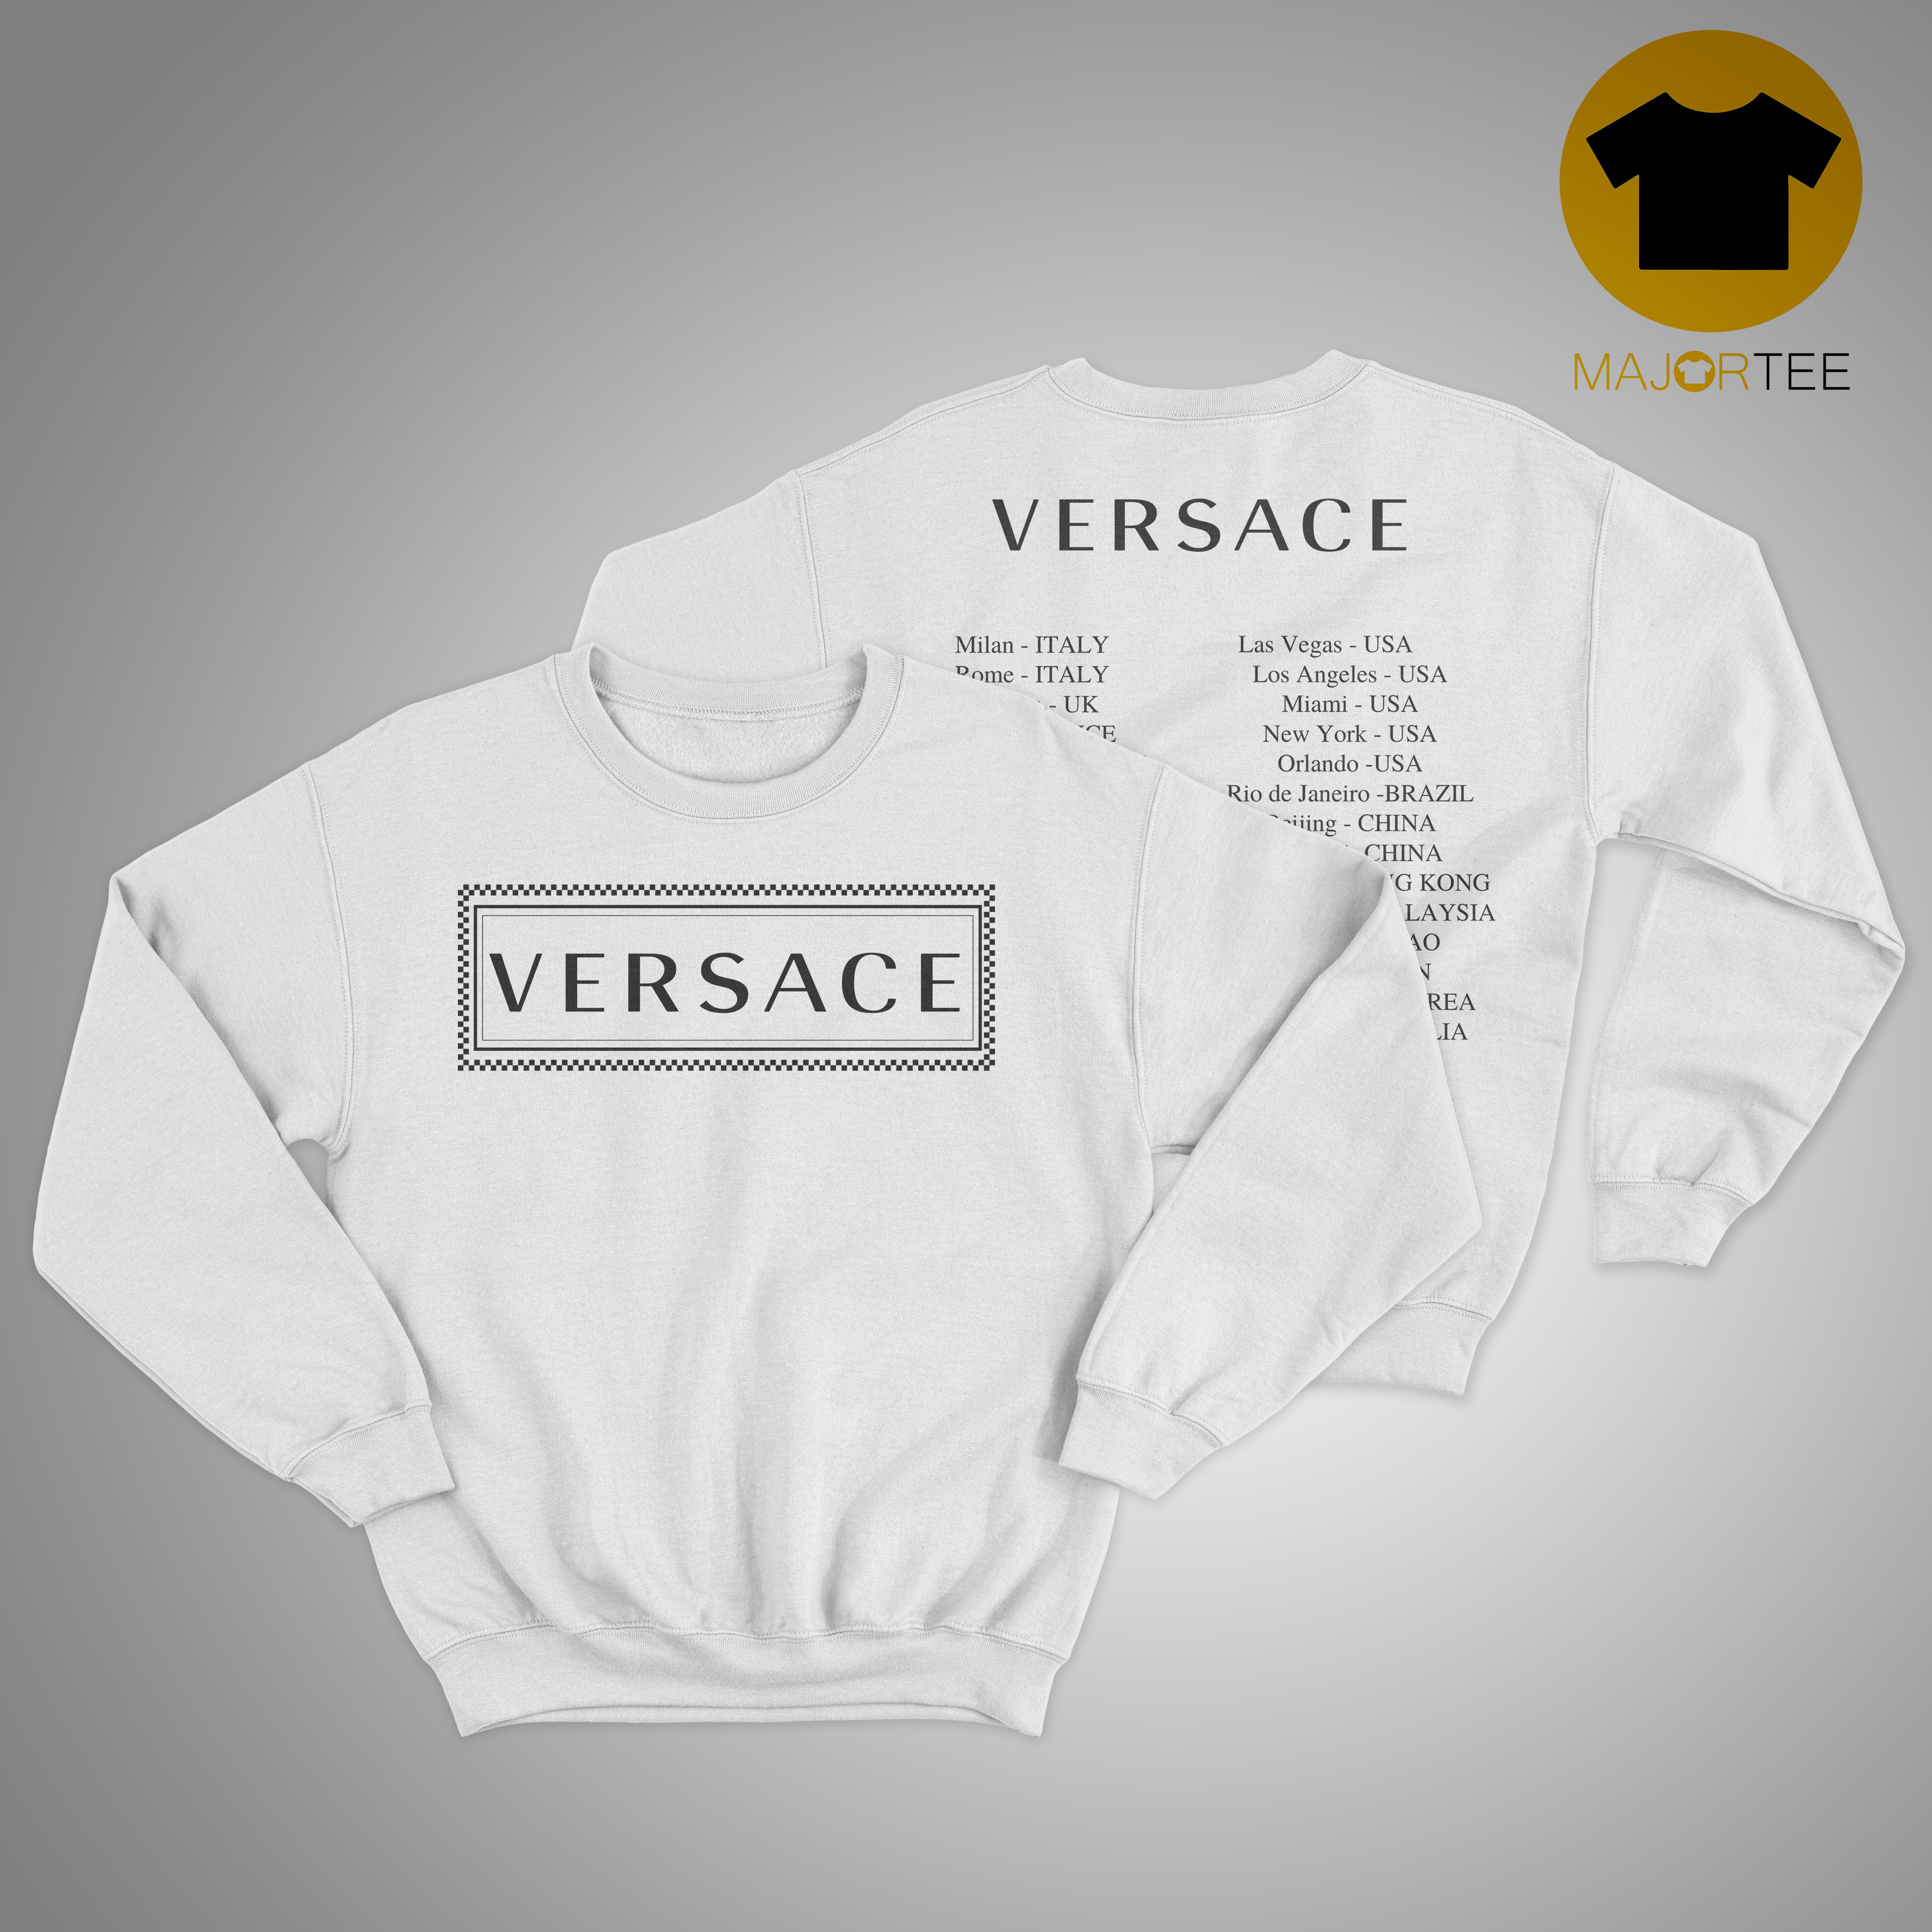 Versace Sweater' China Controversy